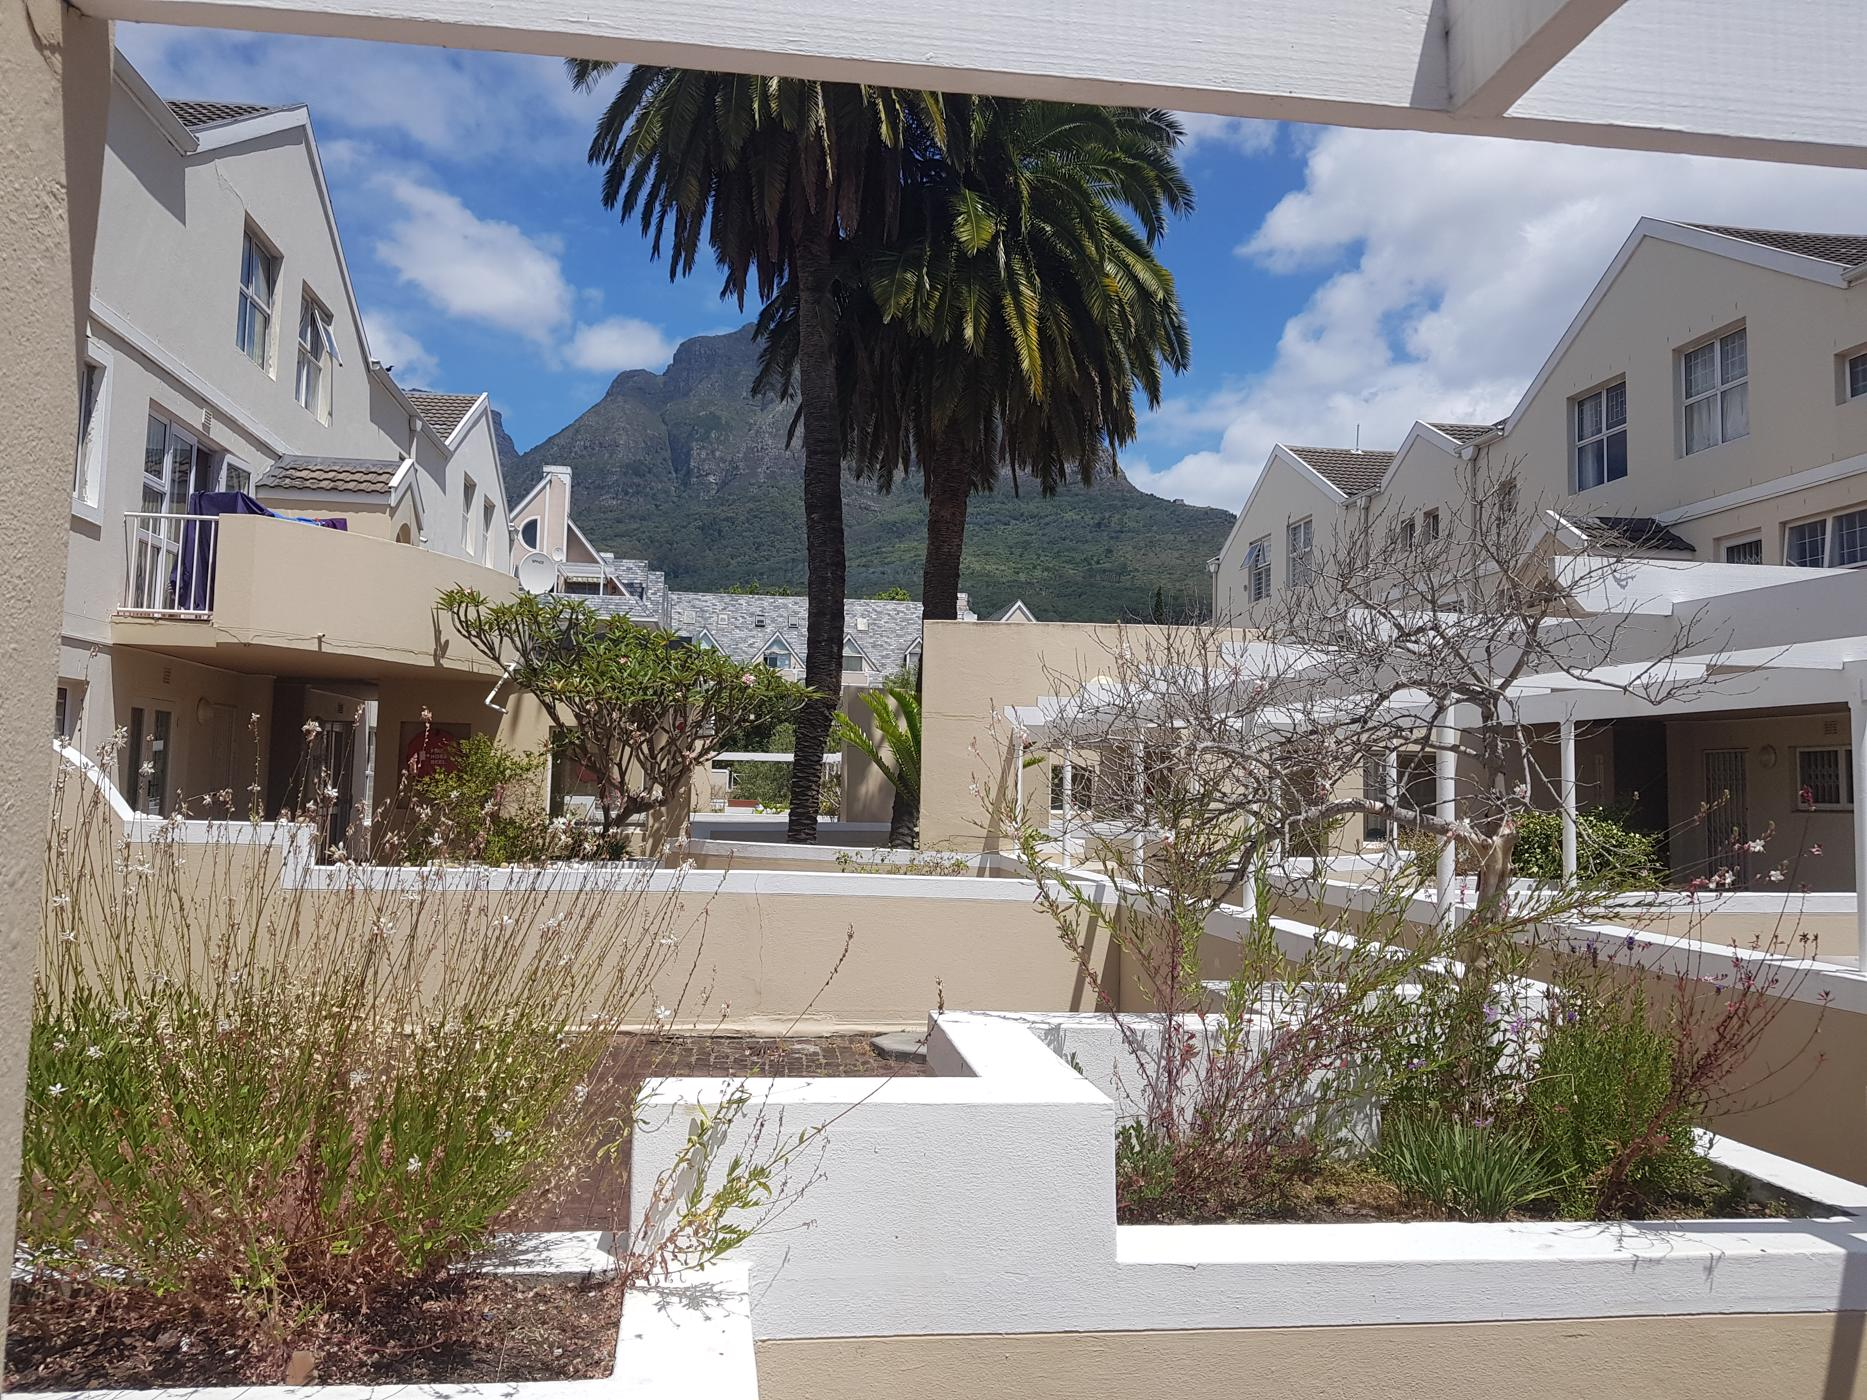 https://listing.pamgolding.co.za/images/properties/201912/1558778/H/1558778_H_1.jpg